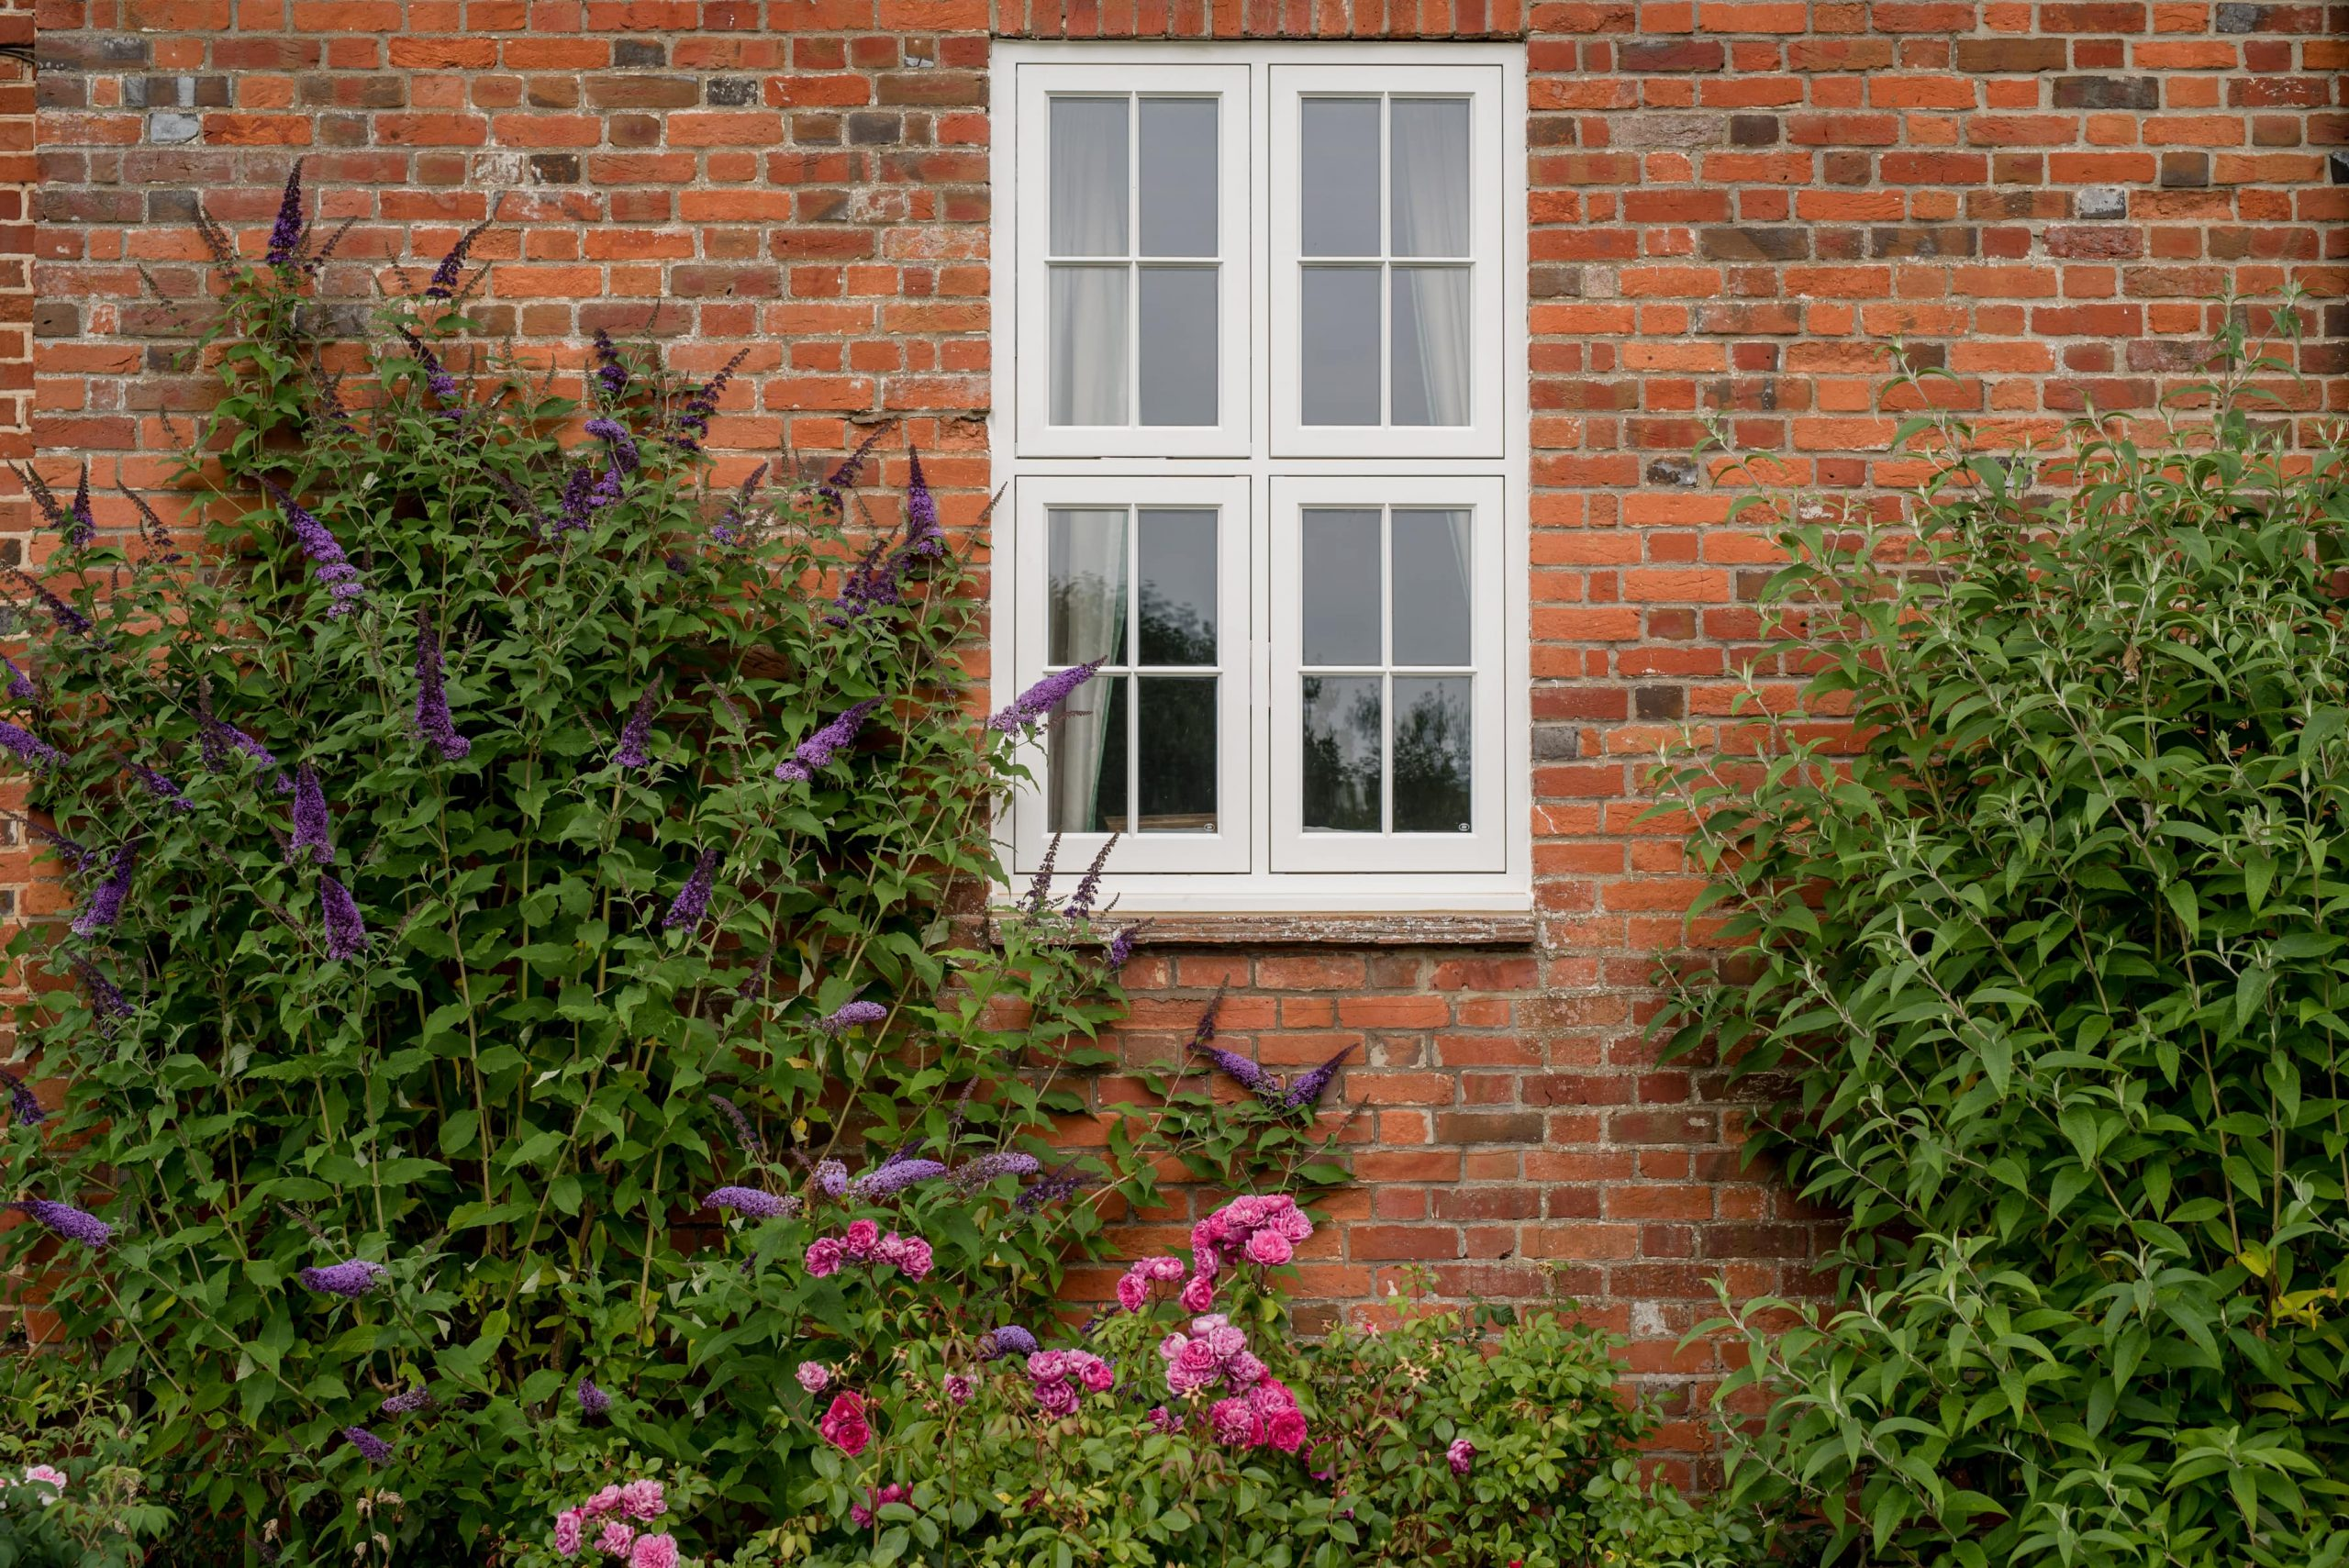 Small white casement window